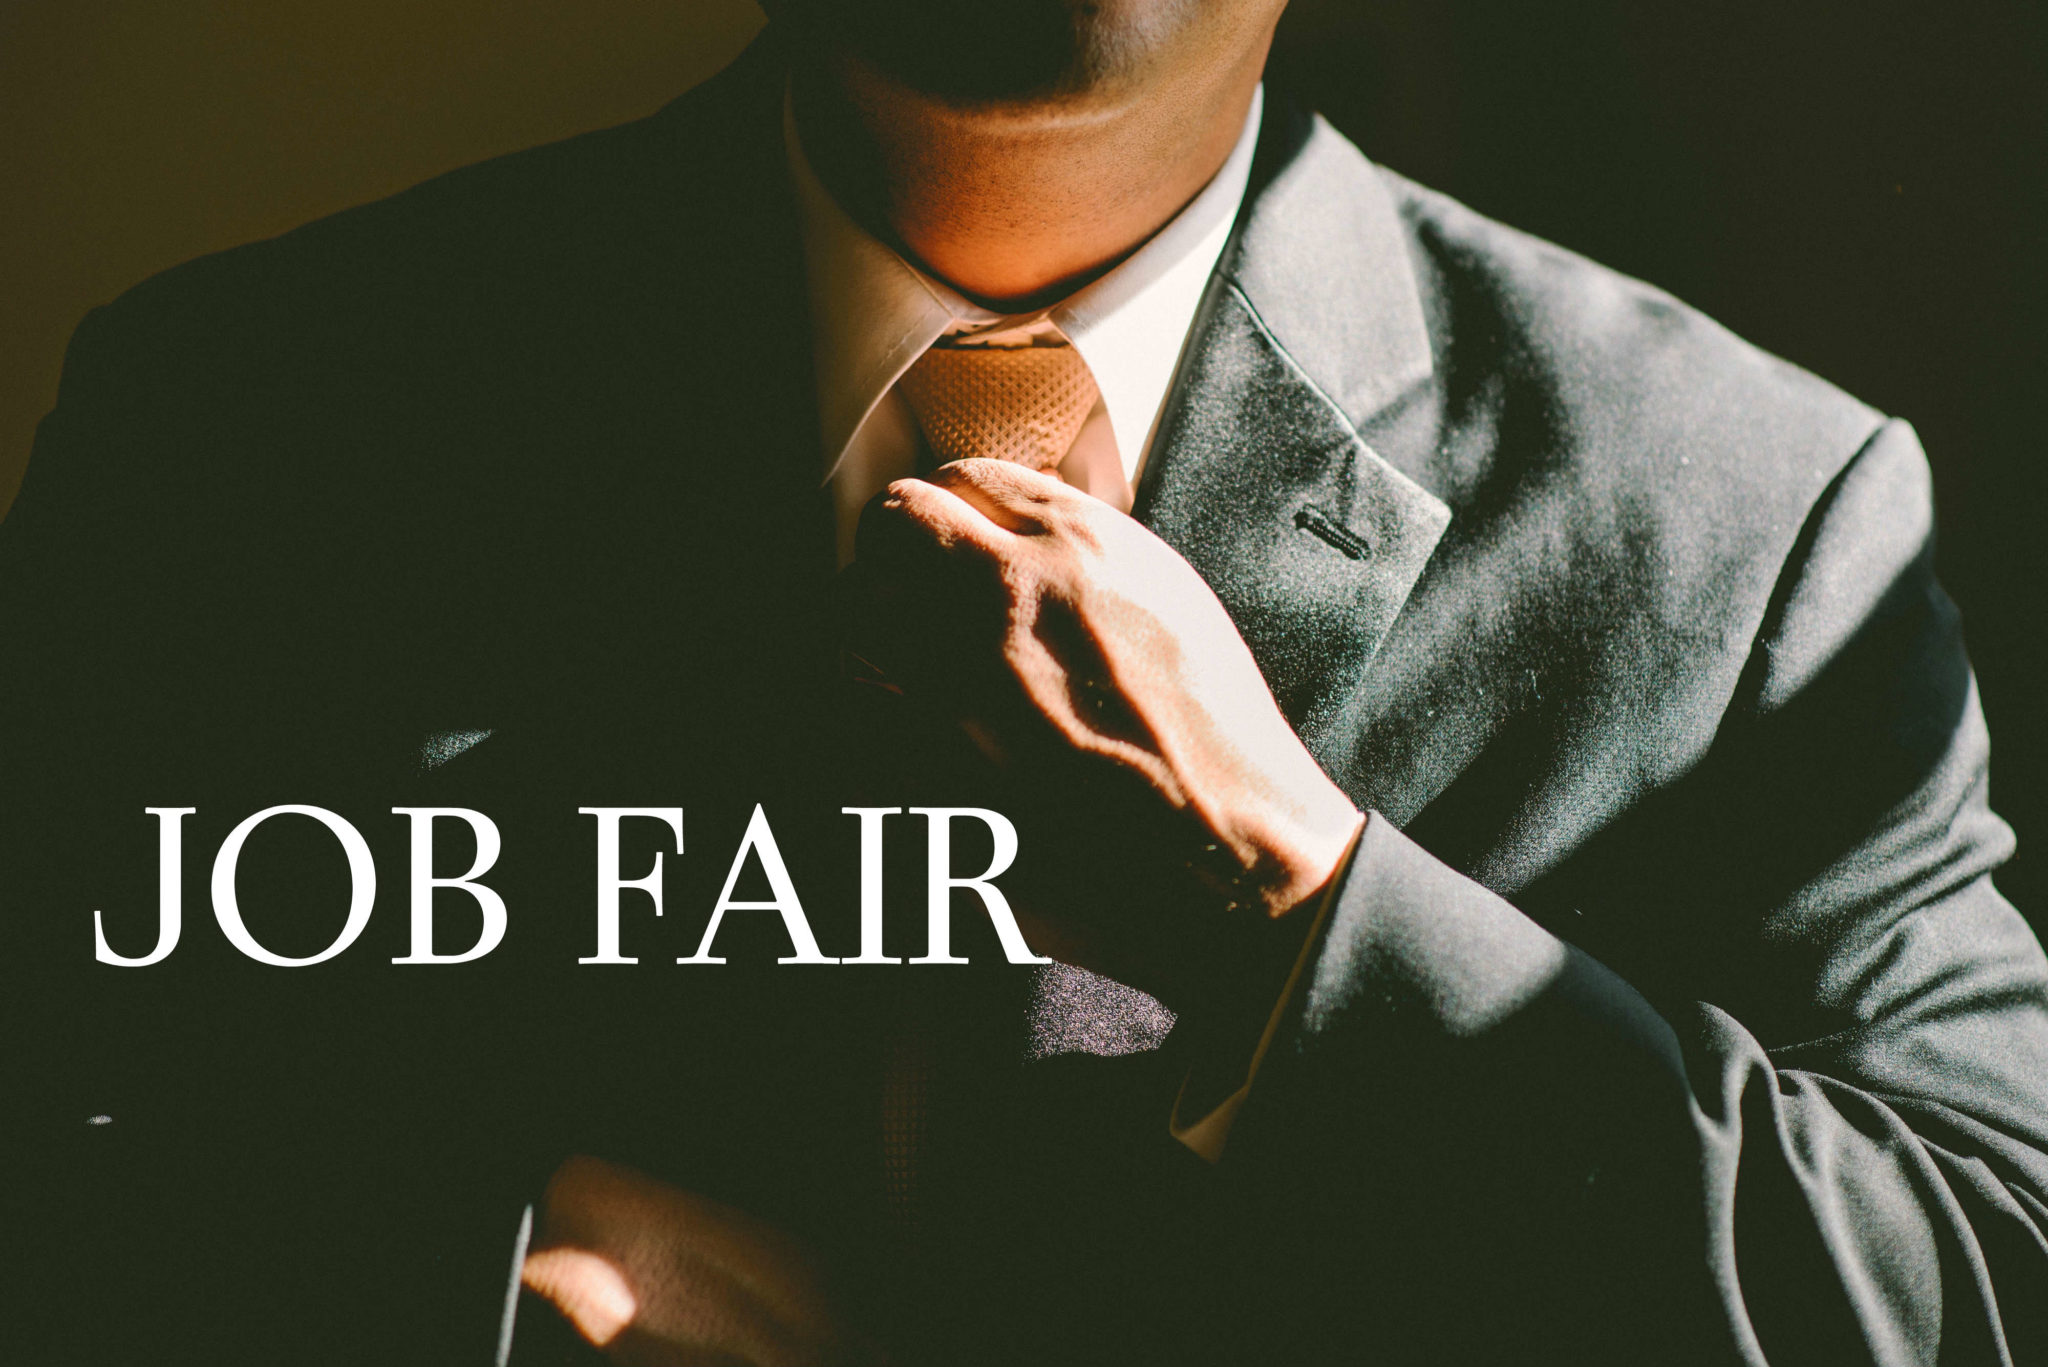 Job Fair Tips